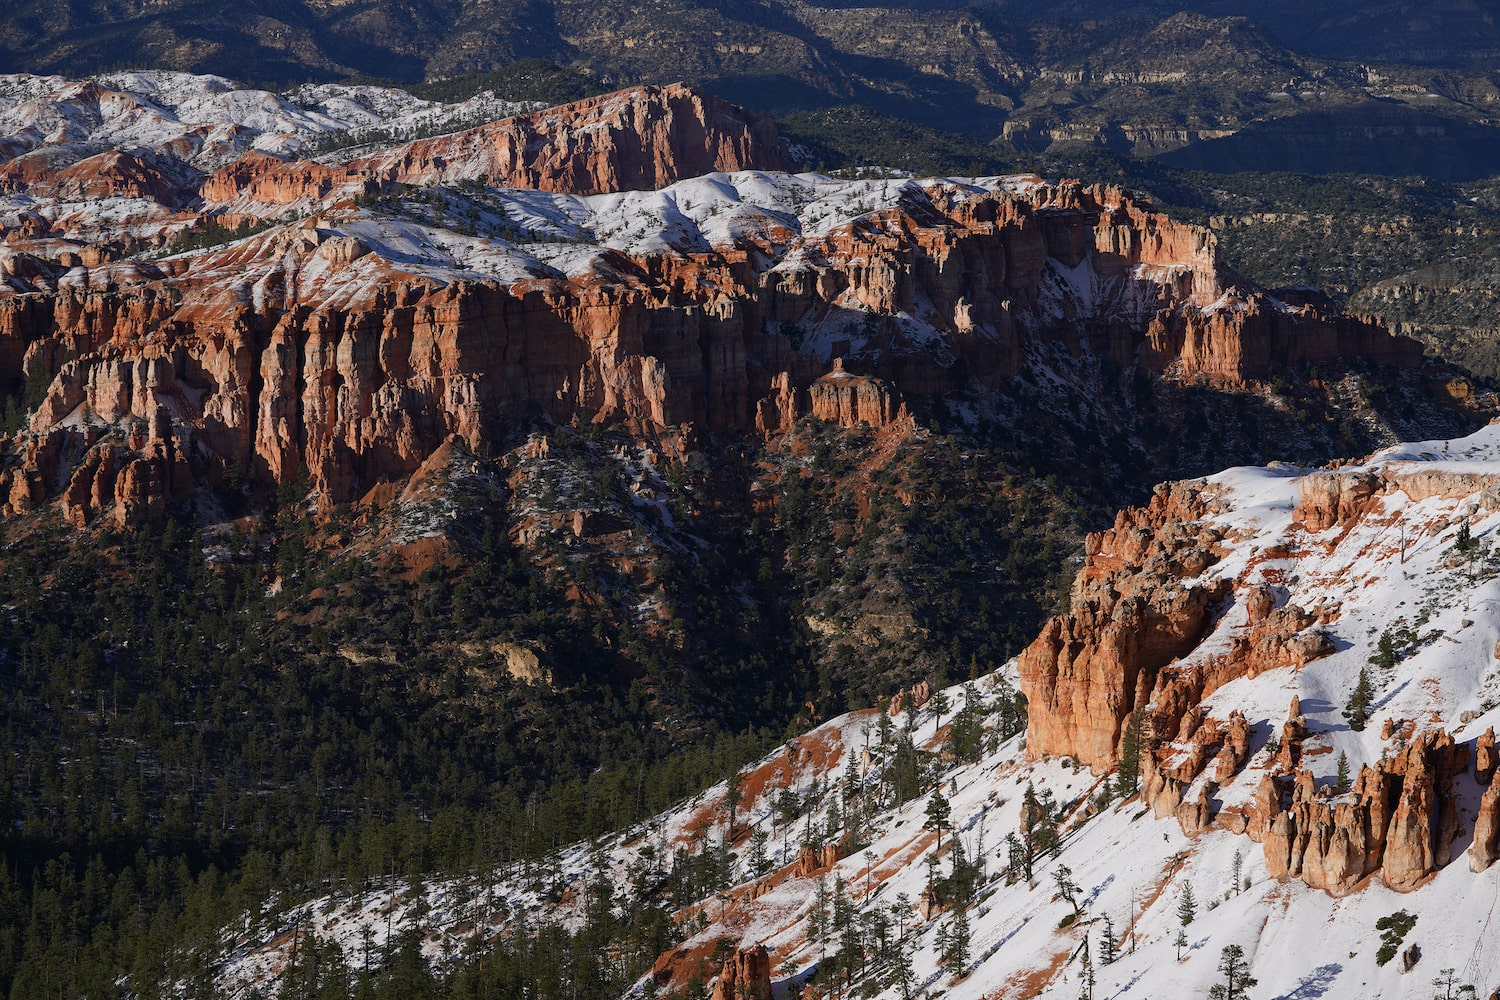 mountain-filled-with-snow-canyon-landscape-alpha-7RIV